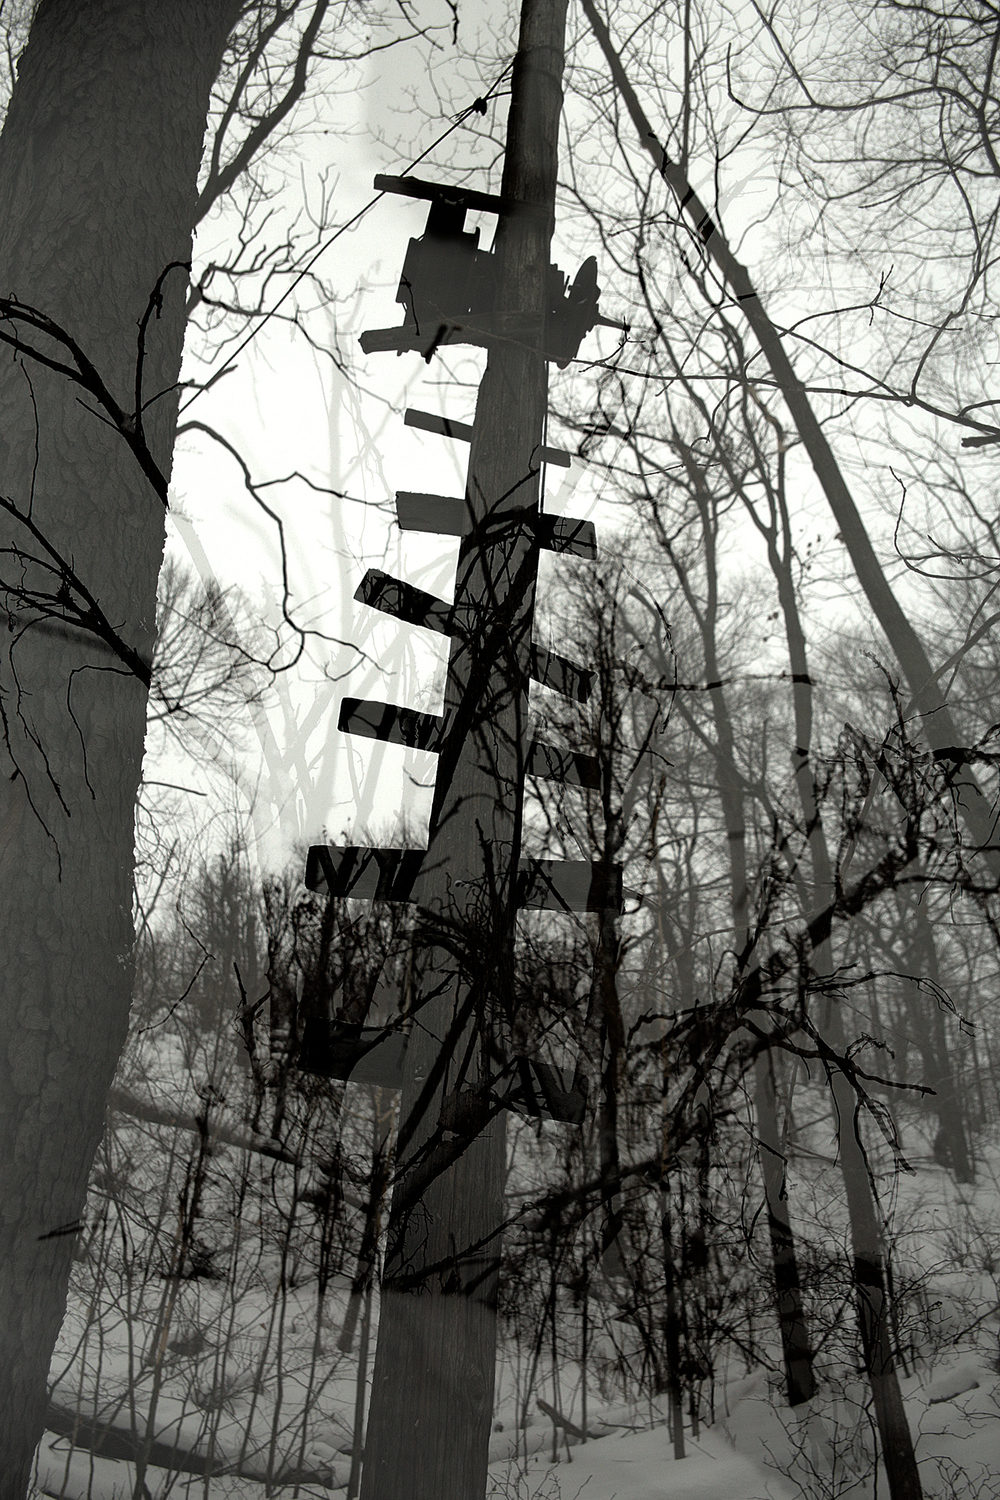 pully #2 double exposure(HDR).jpg